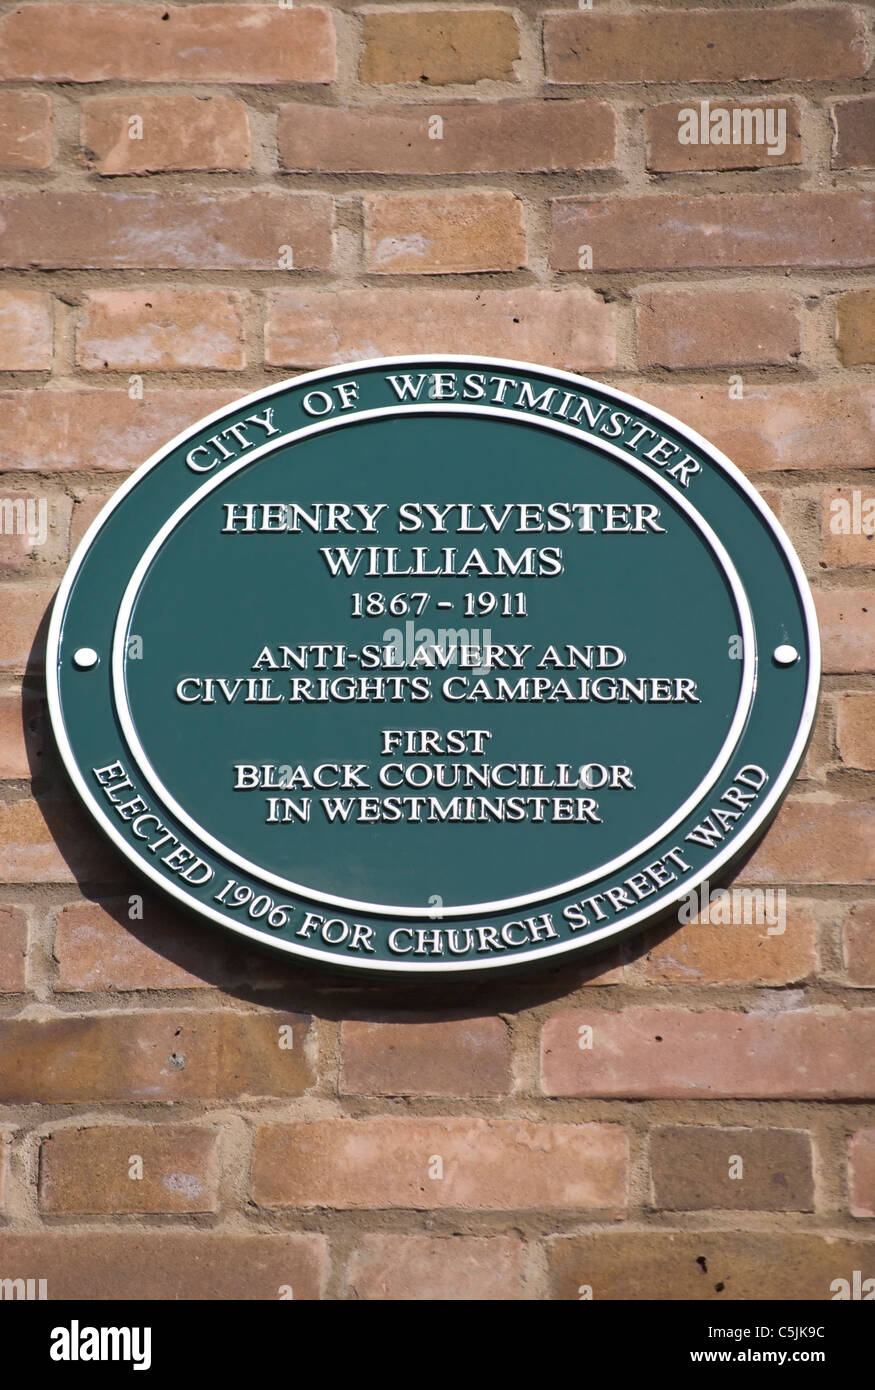 westminster council plaque marking a home of henry sylvester williams in paddington, london, england - Stock Image